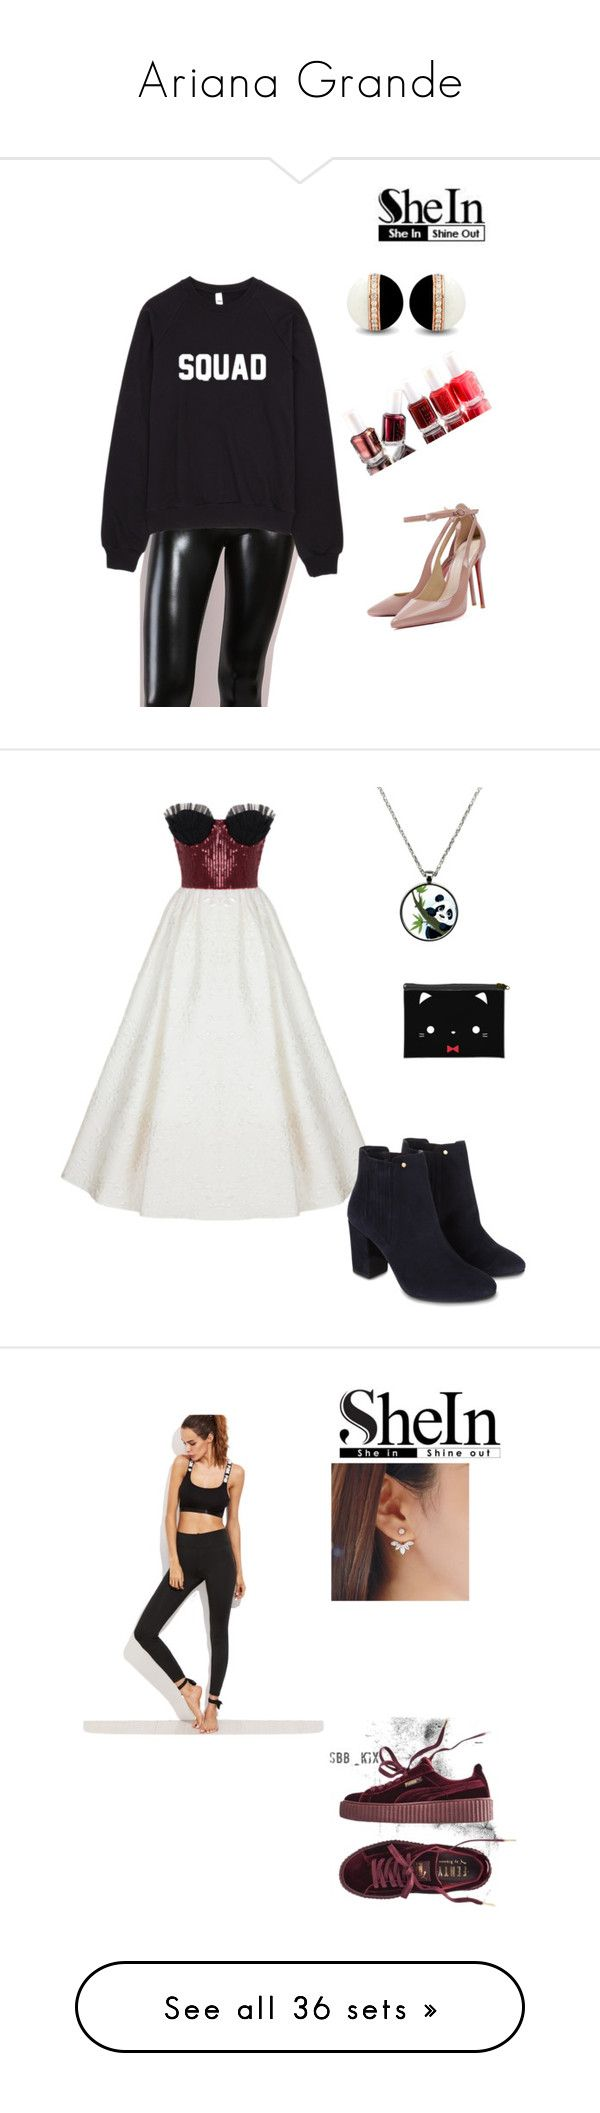 """""""Ariana Grande"""" by lady-shadylady ❤ liked on Polyvore featuring art, interior, interiors, interior design, home, home decor, interior decorating, Rasario, Monsoon and beauty"""